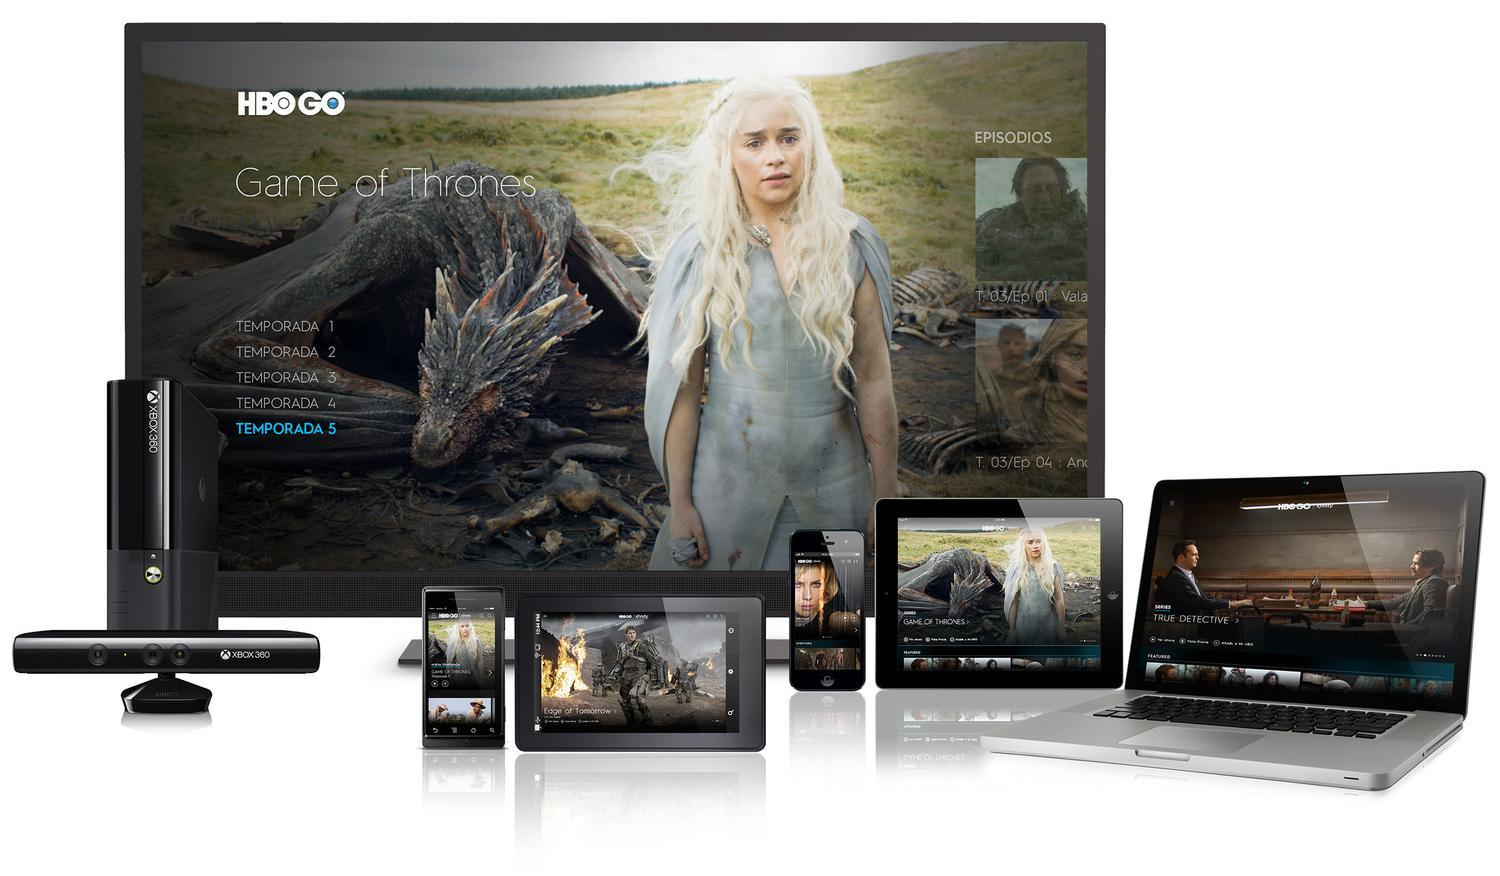 HBO GO launches in Latin America & Carribbean, HBO NOW